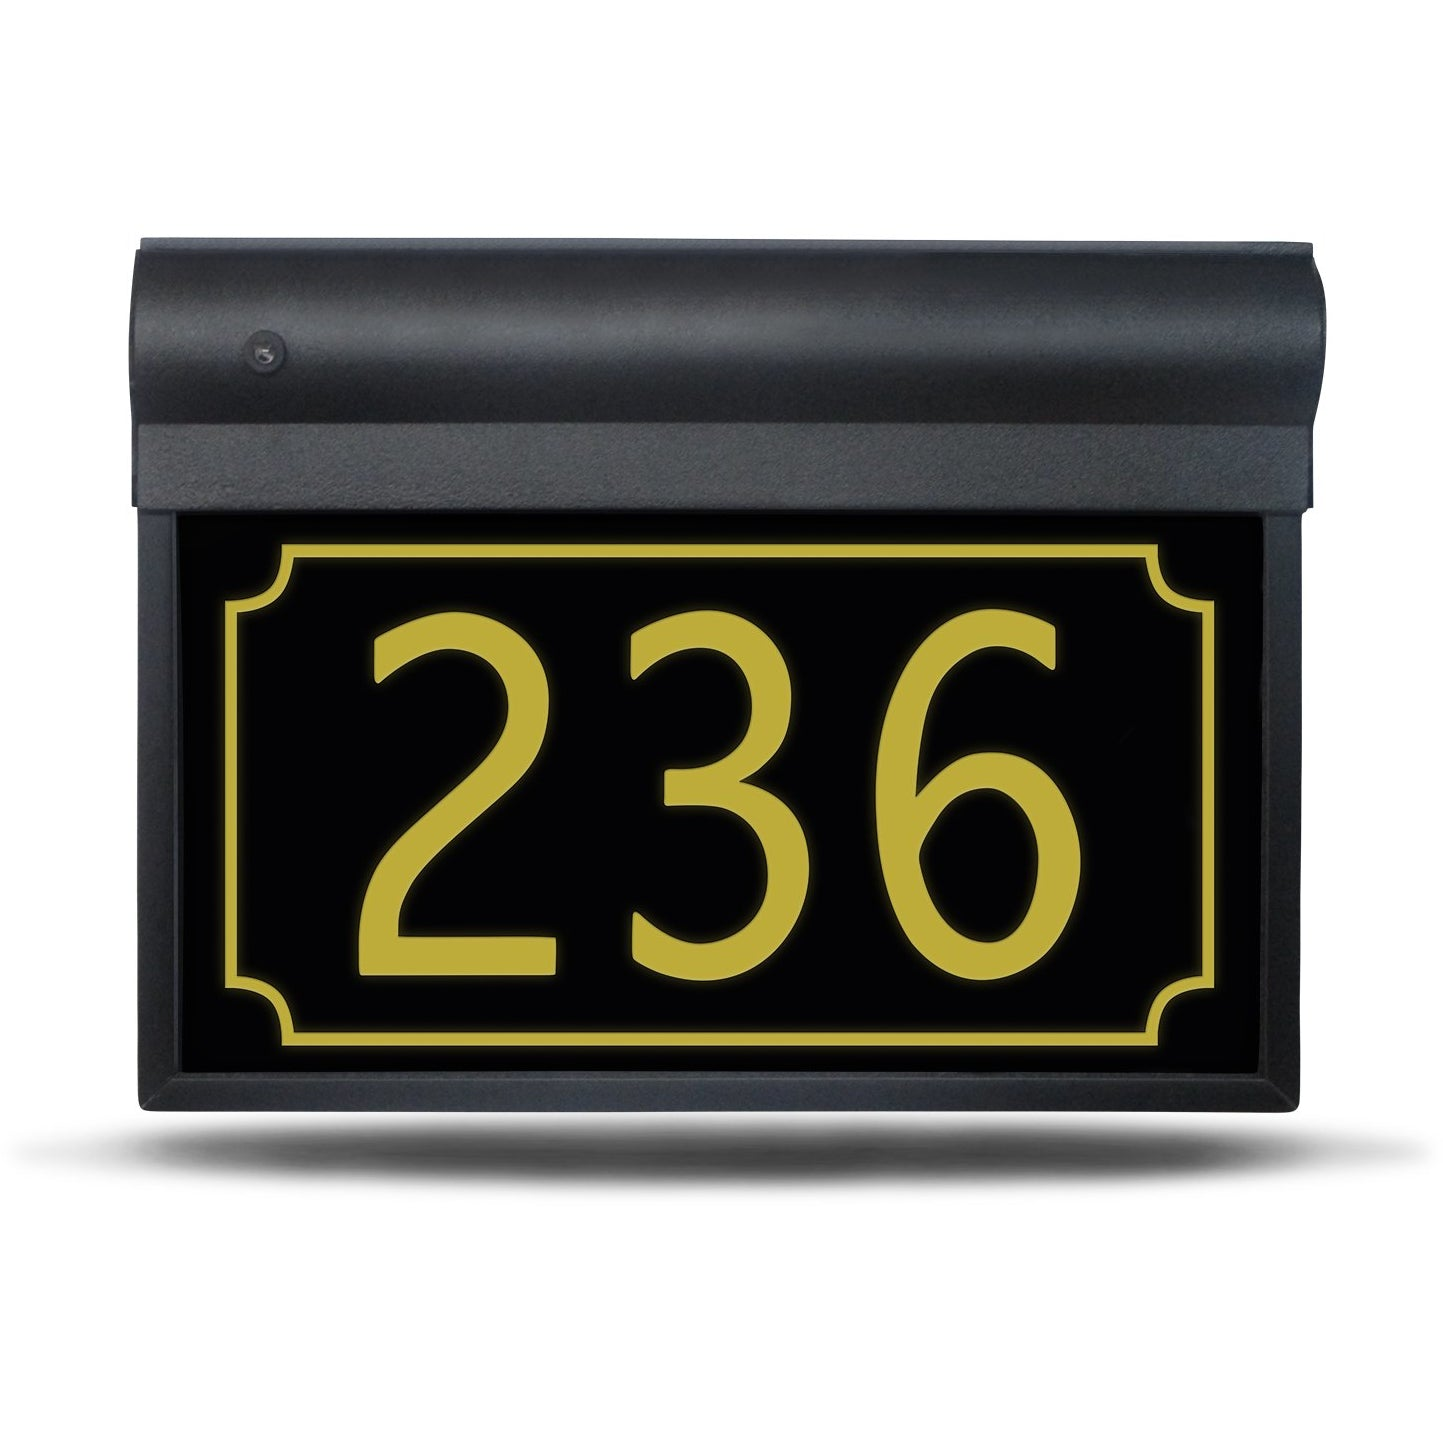 SL-201-17'' – Enlight Border with Bevel – Illuminated Address Sign